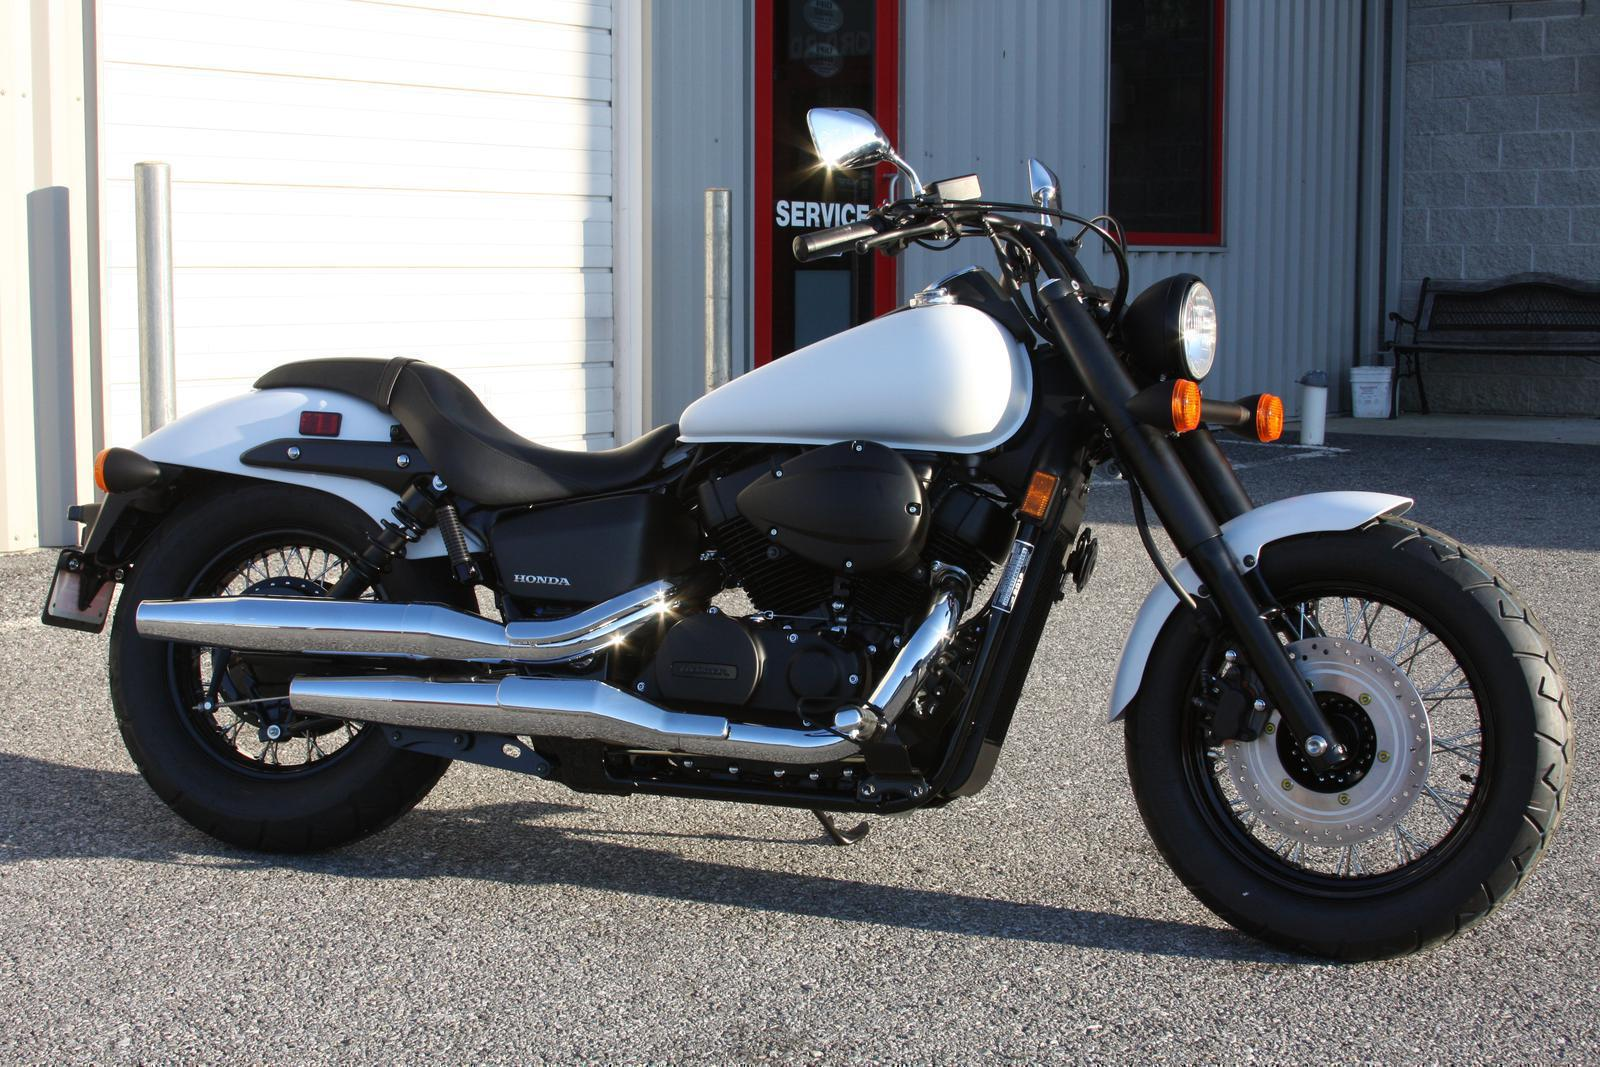 2019 Honda Shadow Phantom For Sale In York Pa Ams Action